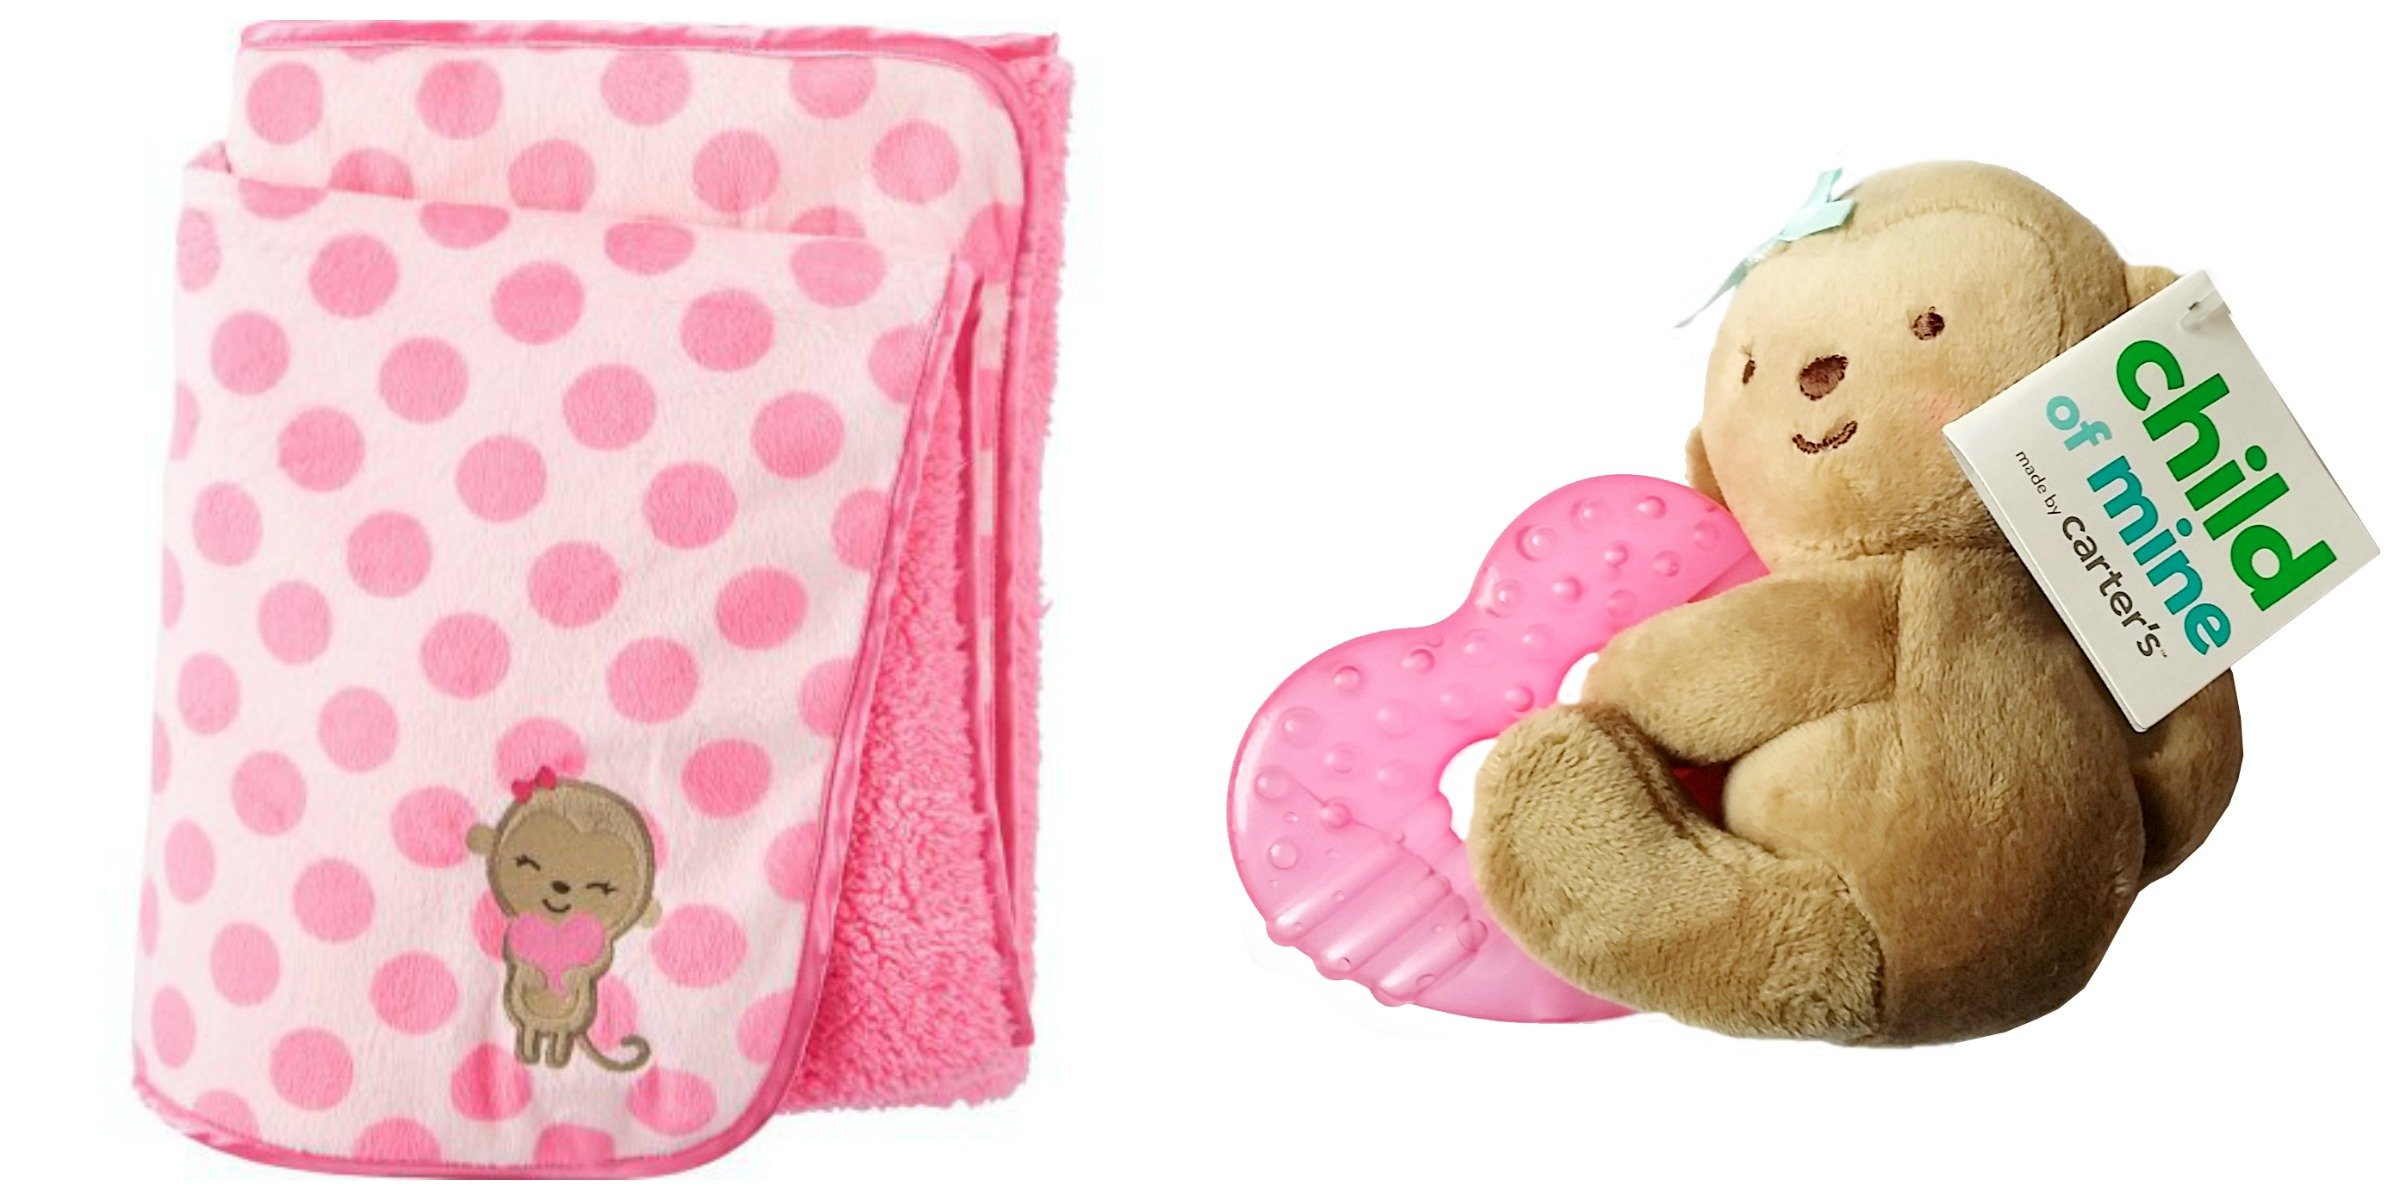 Child of Mine Carter's Newborn Baby Valboa Blanket & Teething Ring Bundle, 2PC by Unknown